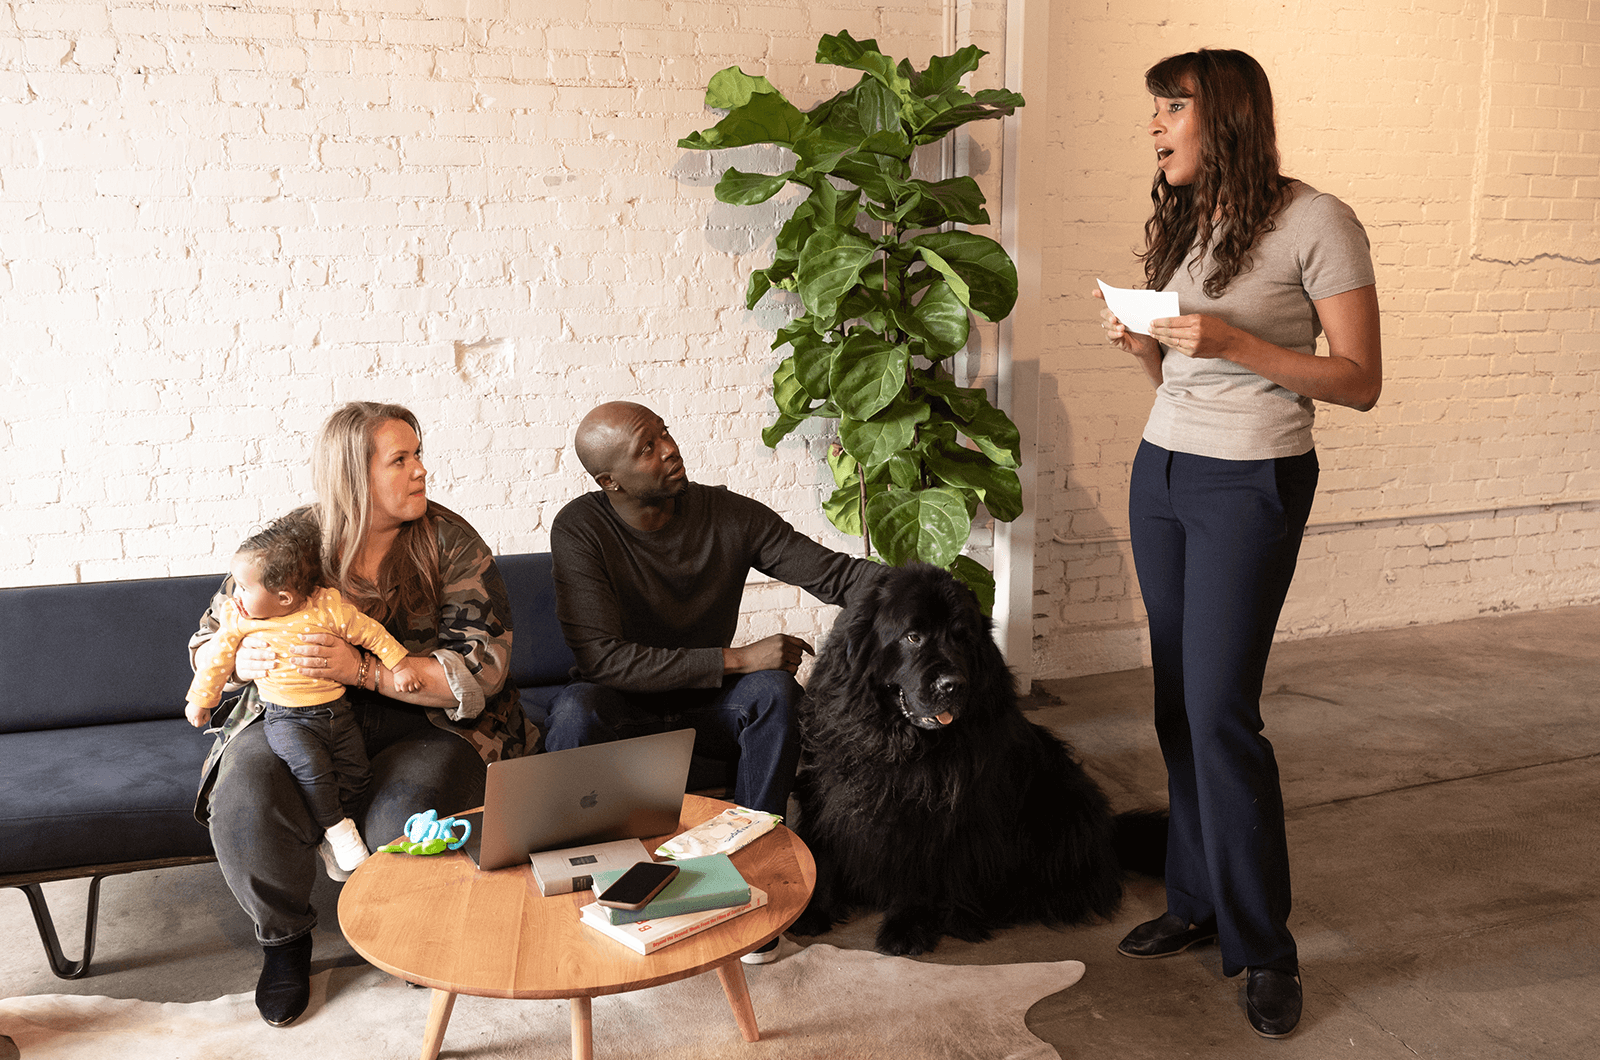 Woman holding note card speaking while woman with baby, a man, and dog watch from couch